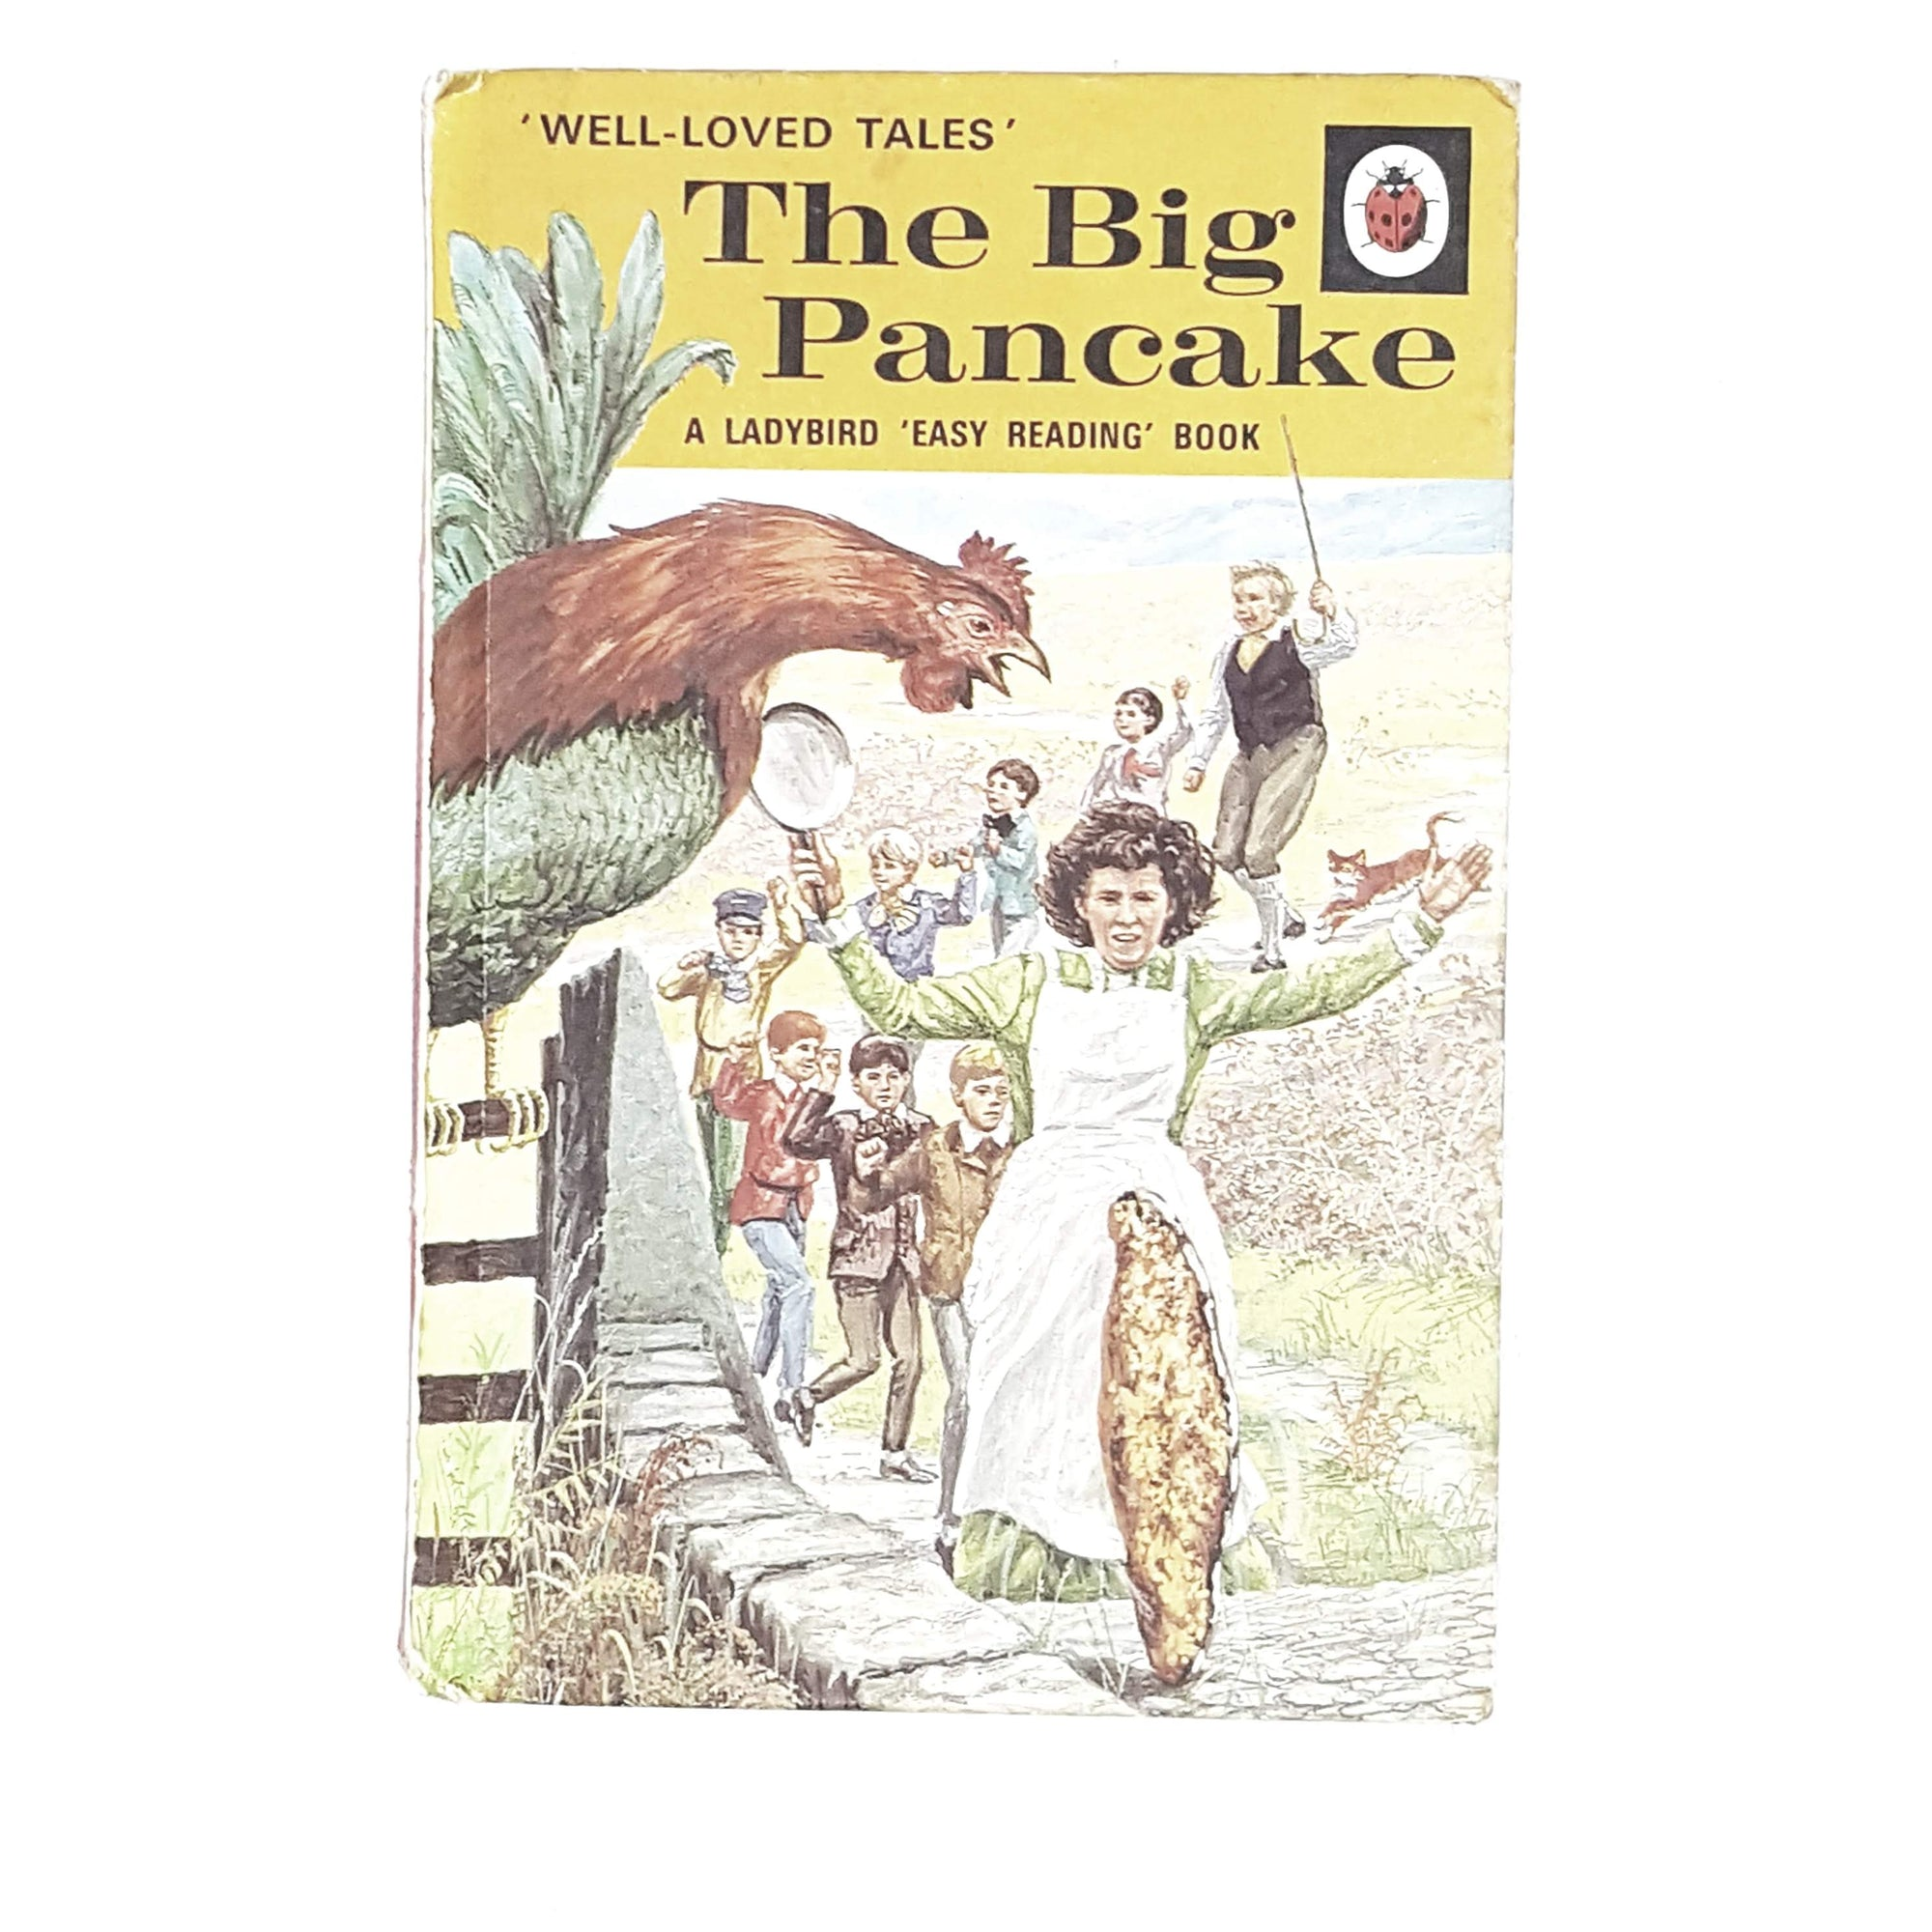 Vintage Ladybird: The Big Pancake 1972